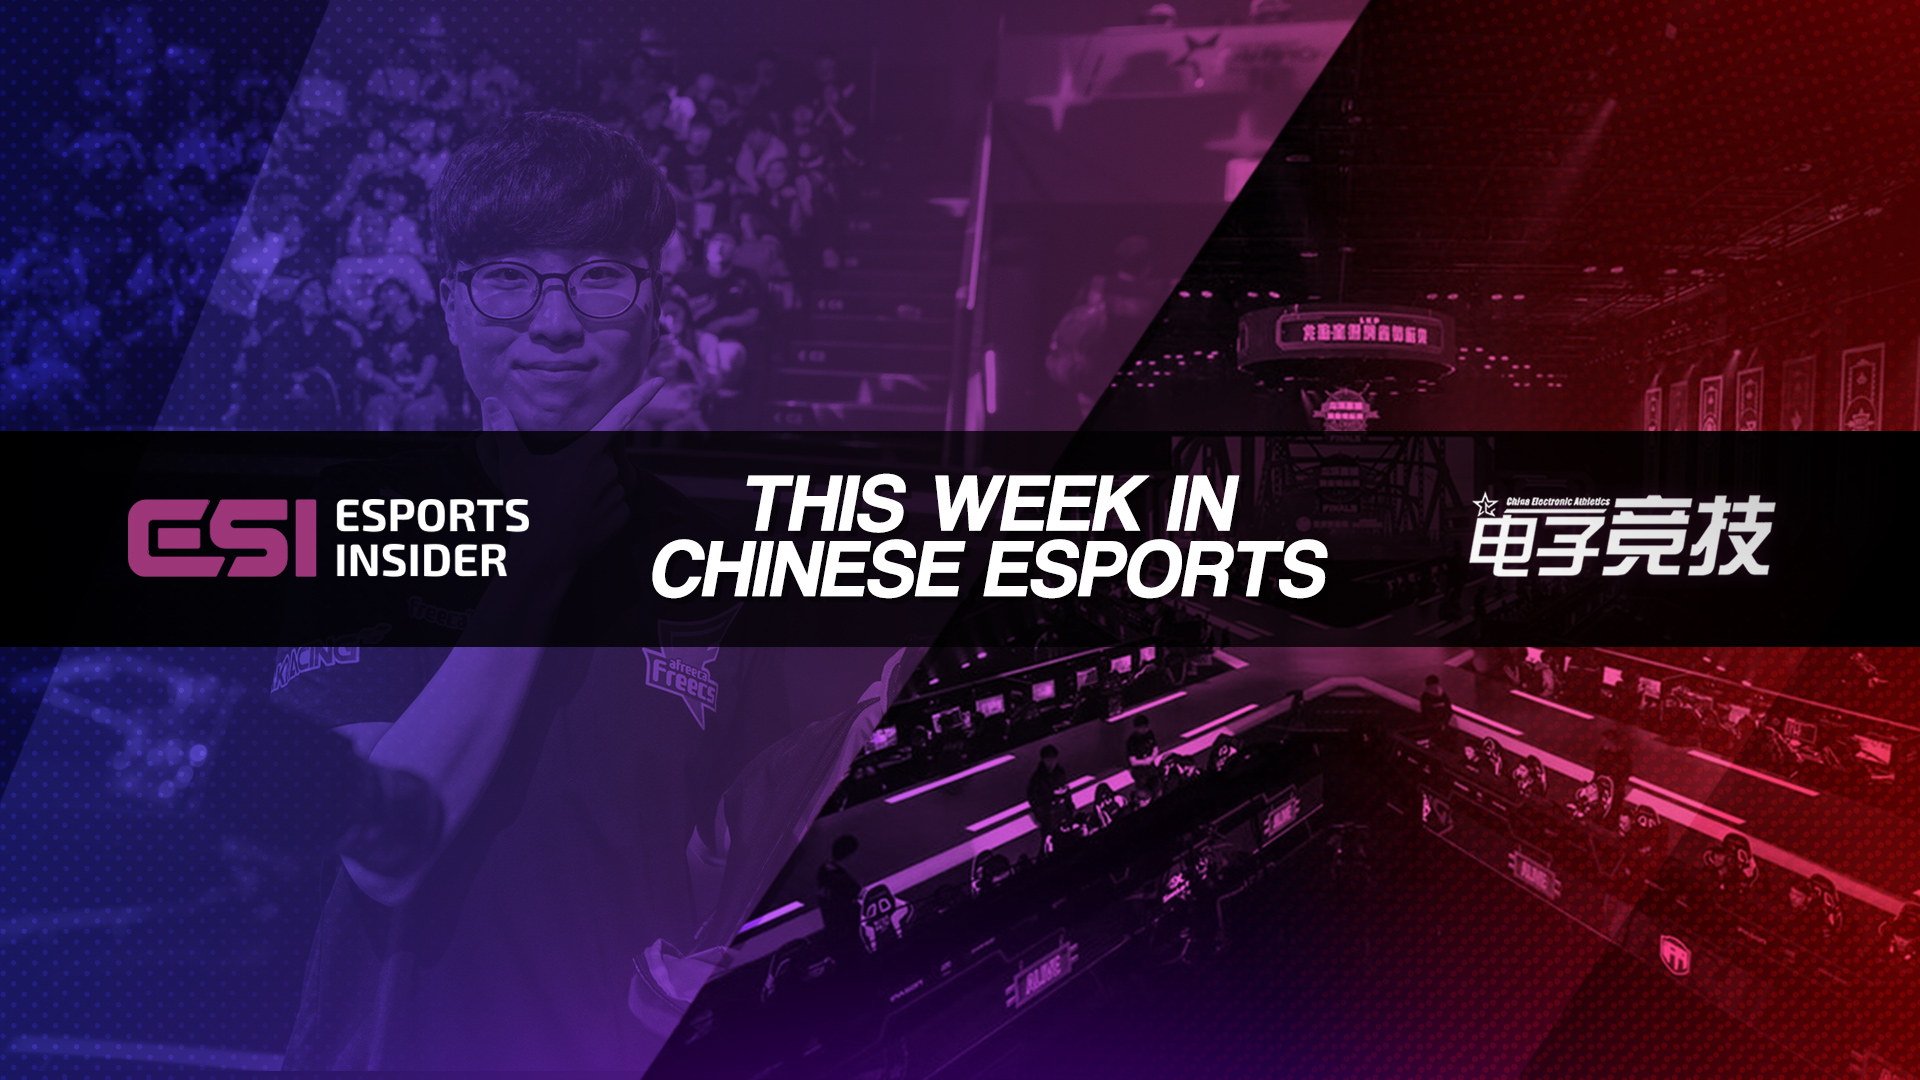 This week in Chinese esports: LCK, KGL - Esports Insider thumbnail